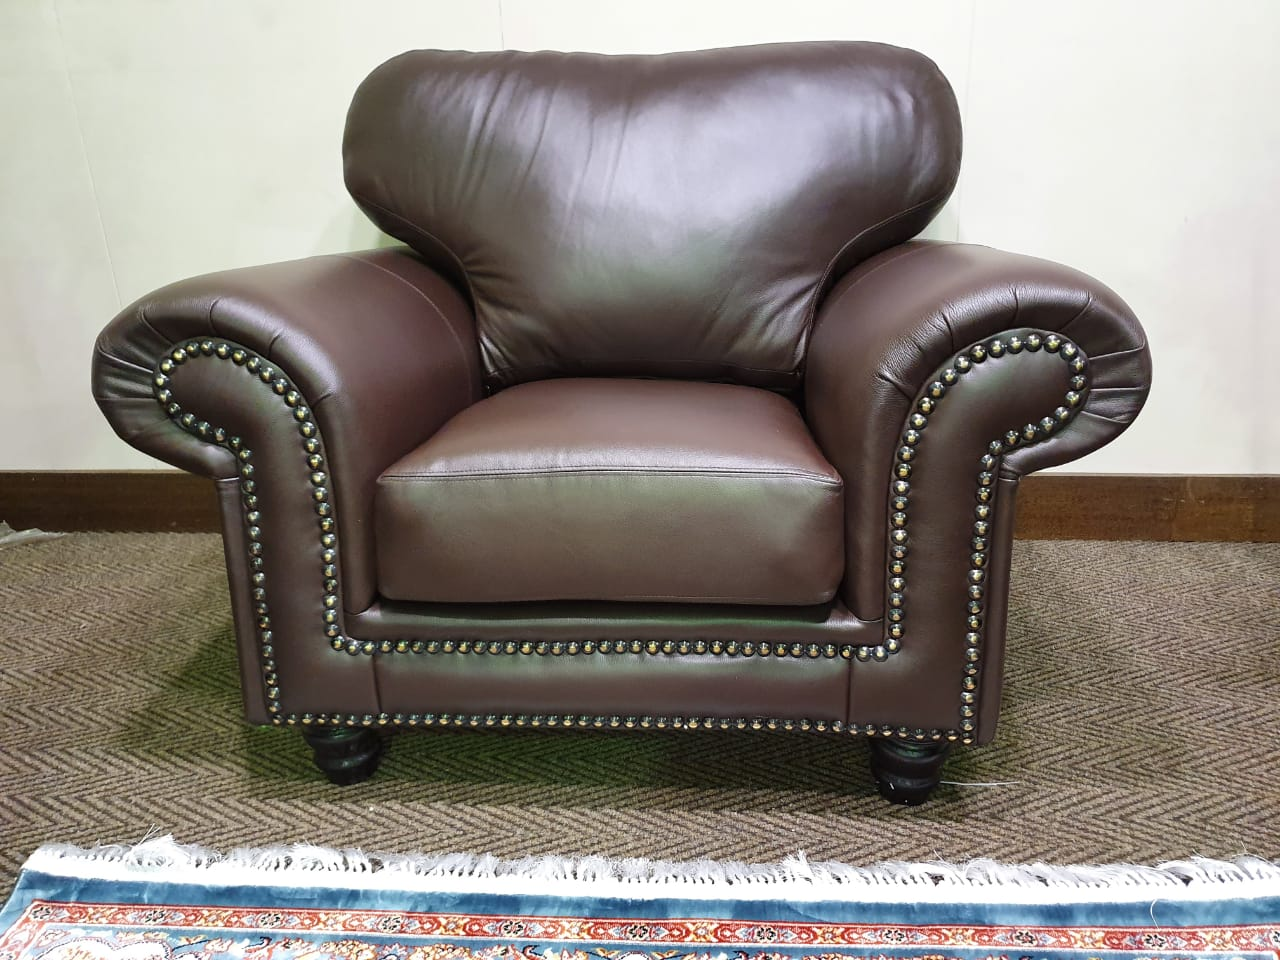 CWA 100% genuine full leather 321 lounge suite WAS R 42495 NOW R 34995